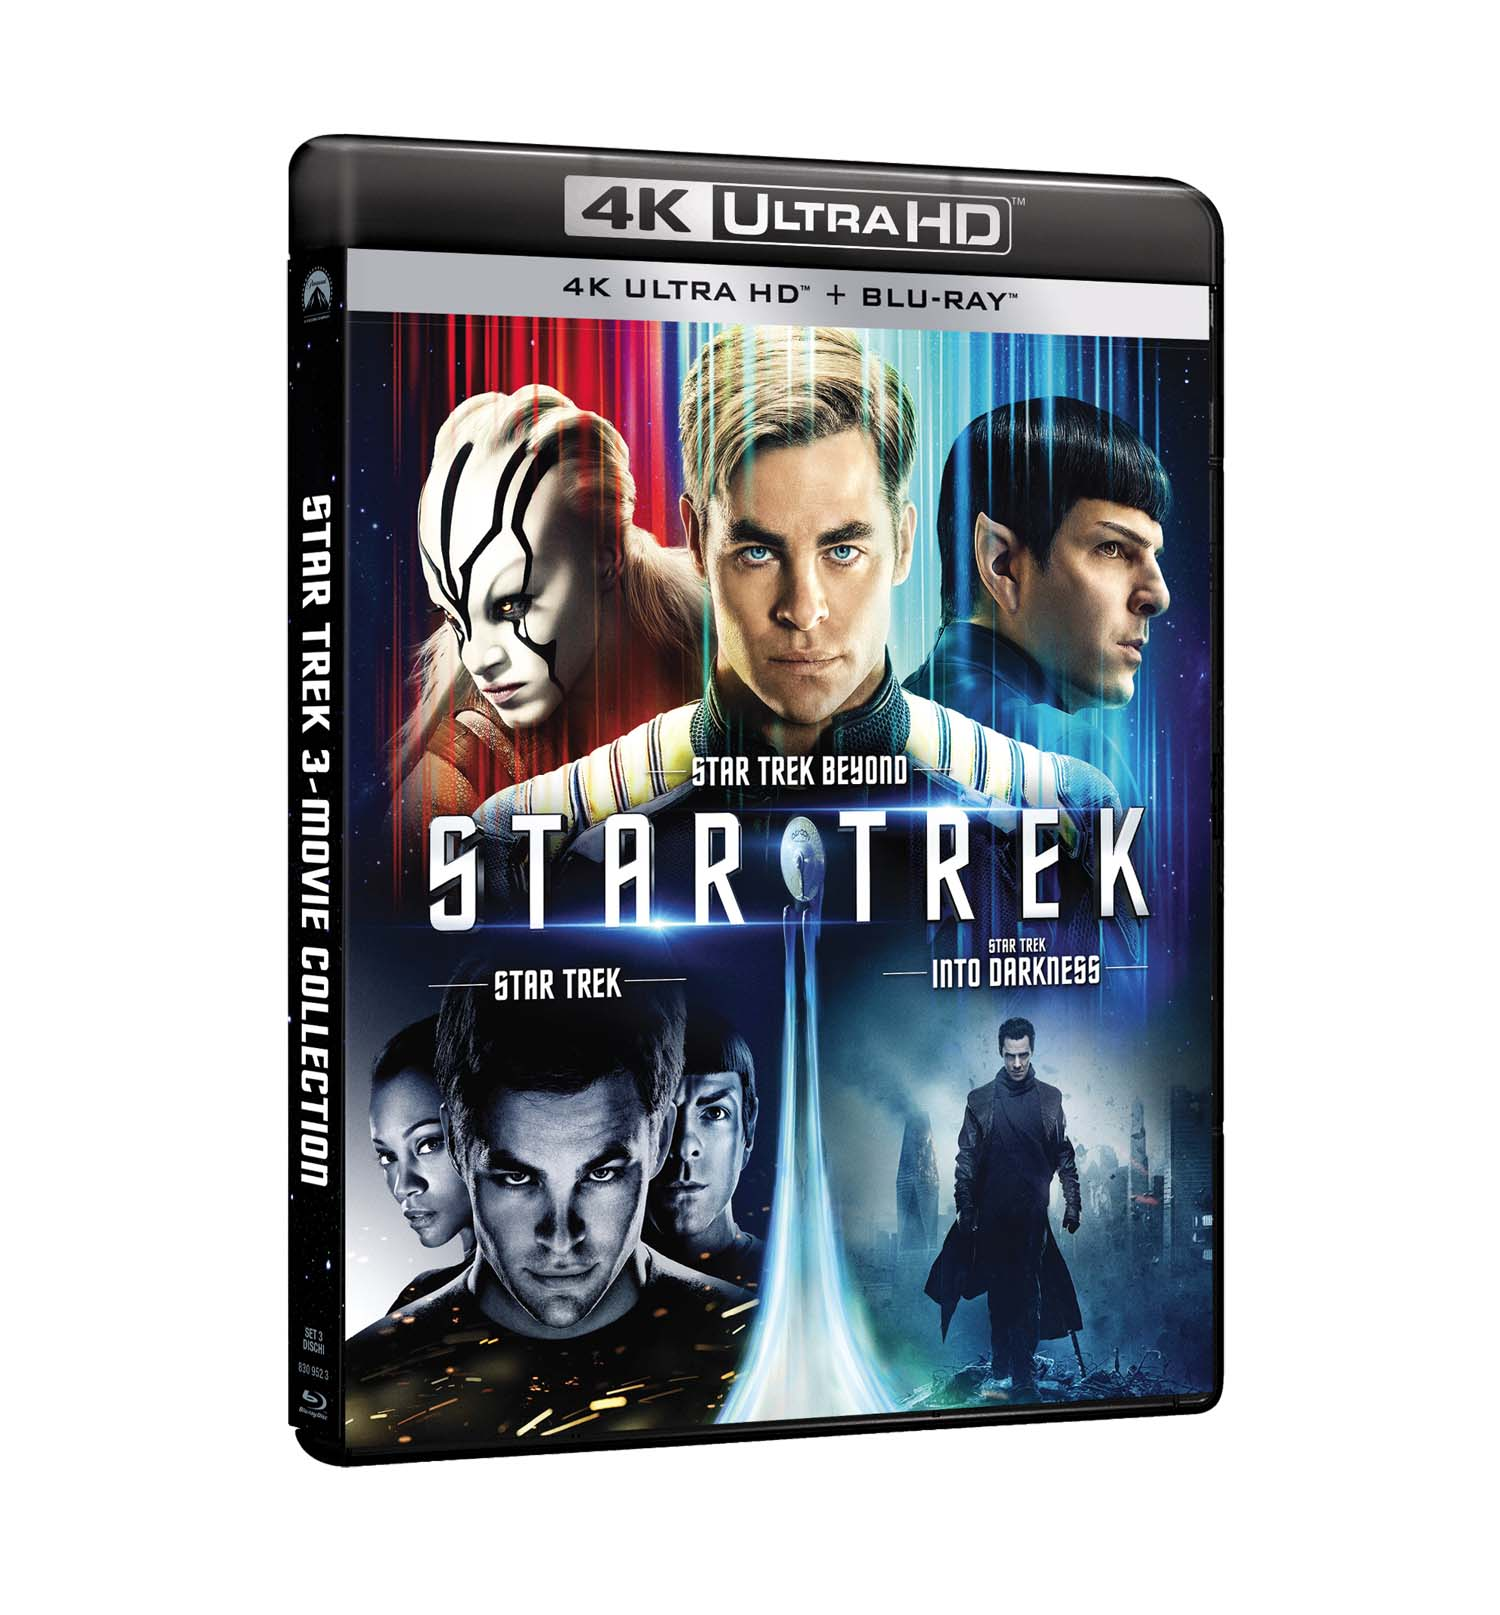 COF.STAR TREK 4K COLLECTION (3 BLU-RAY 4K ULTRA HD+3 BLU-RAY)